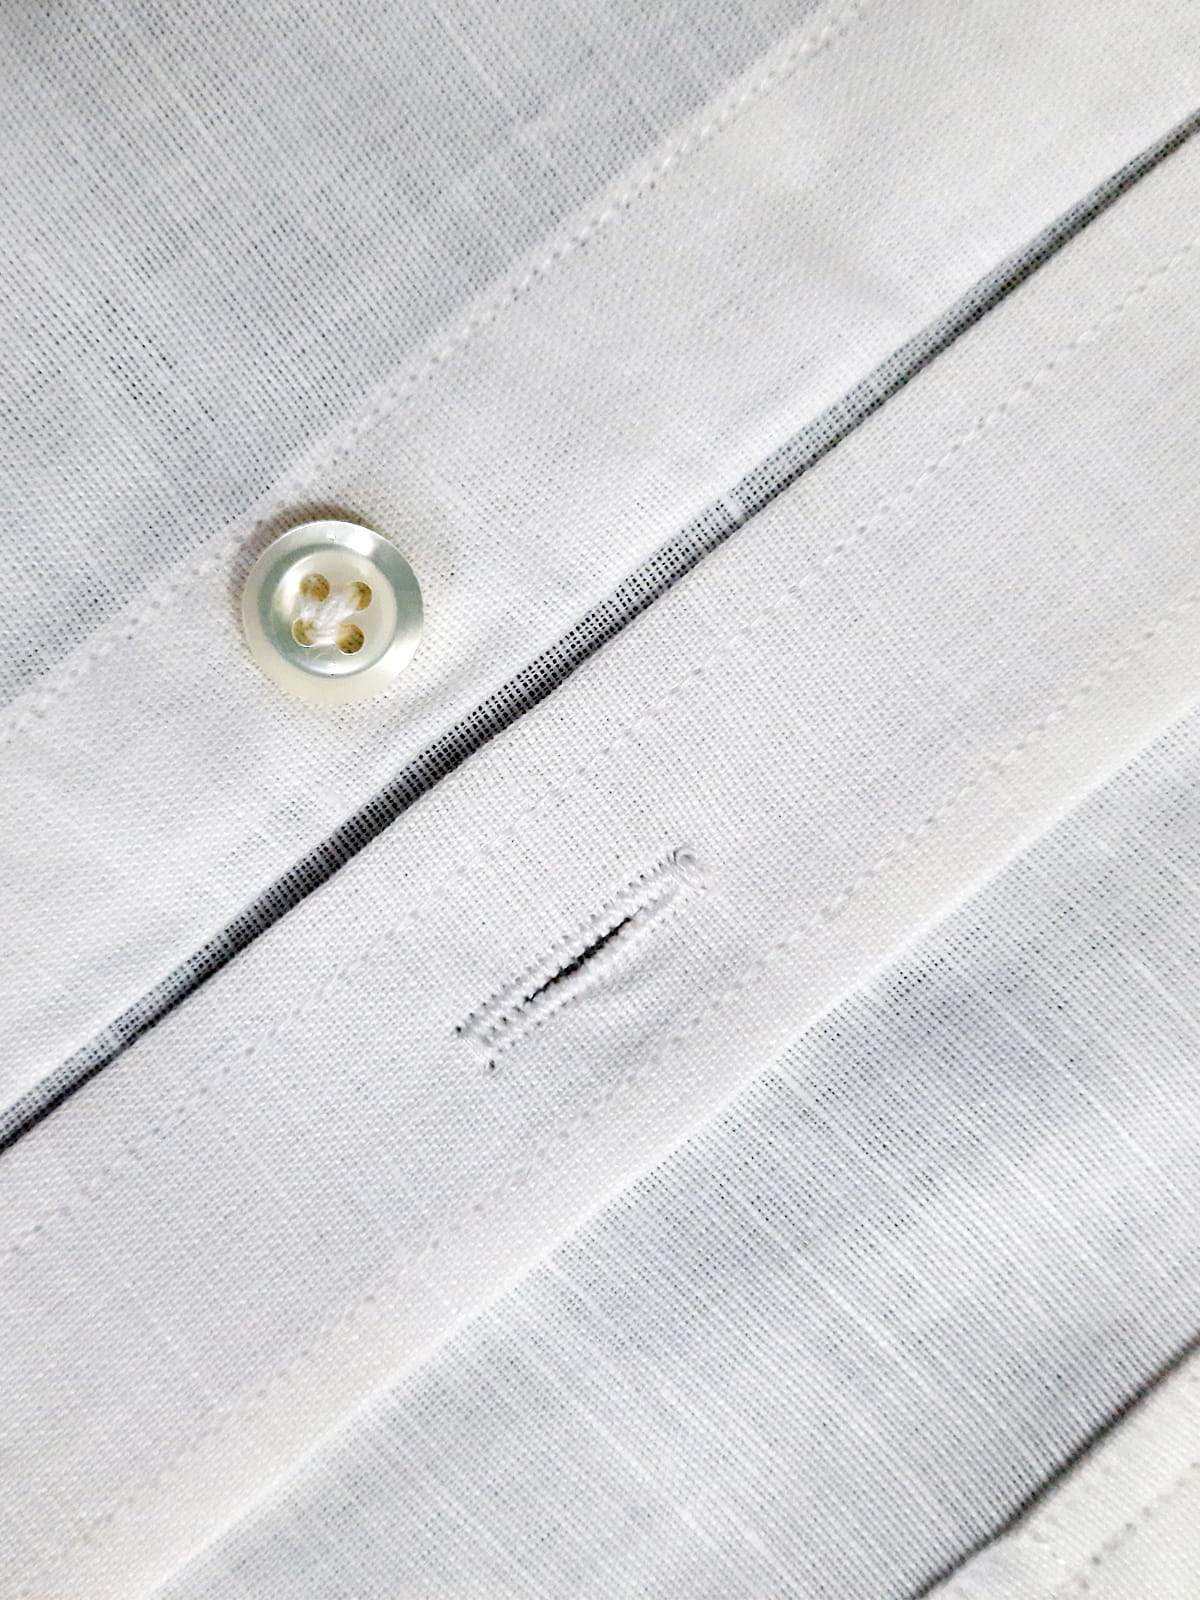 Buy White Linen Shirts Online India